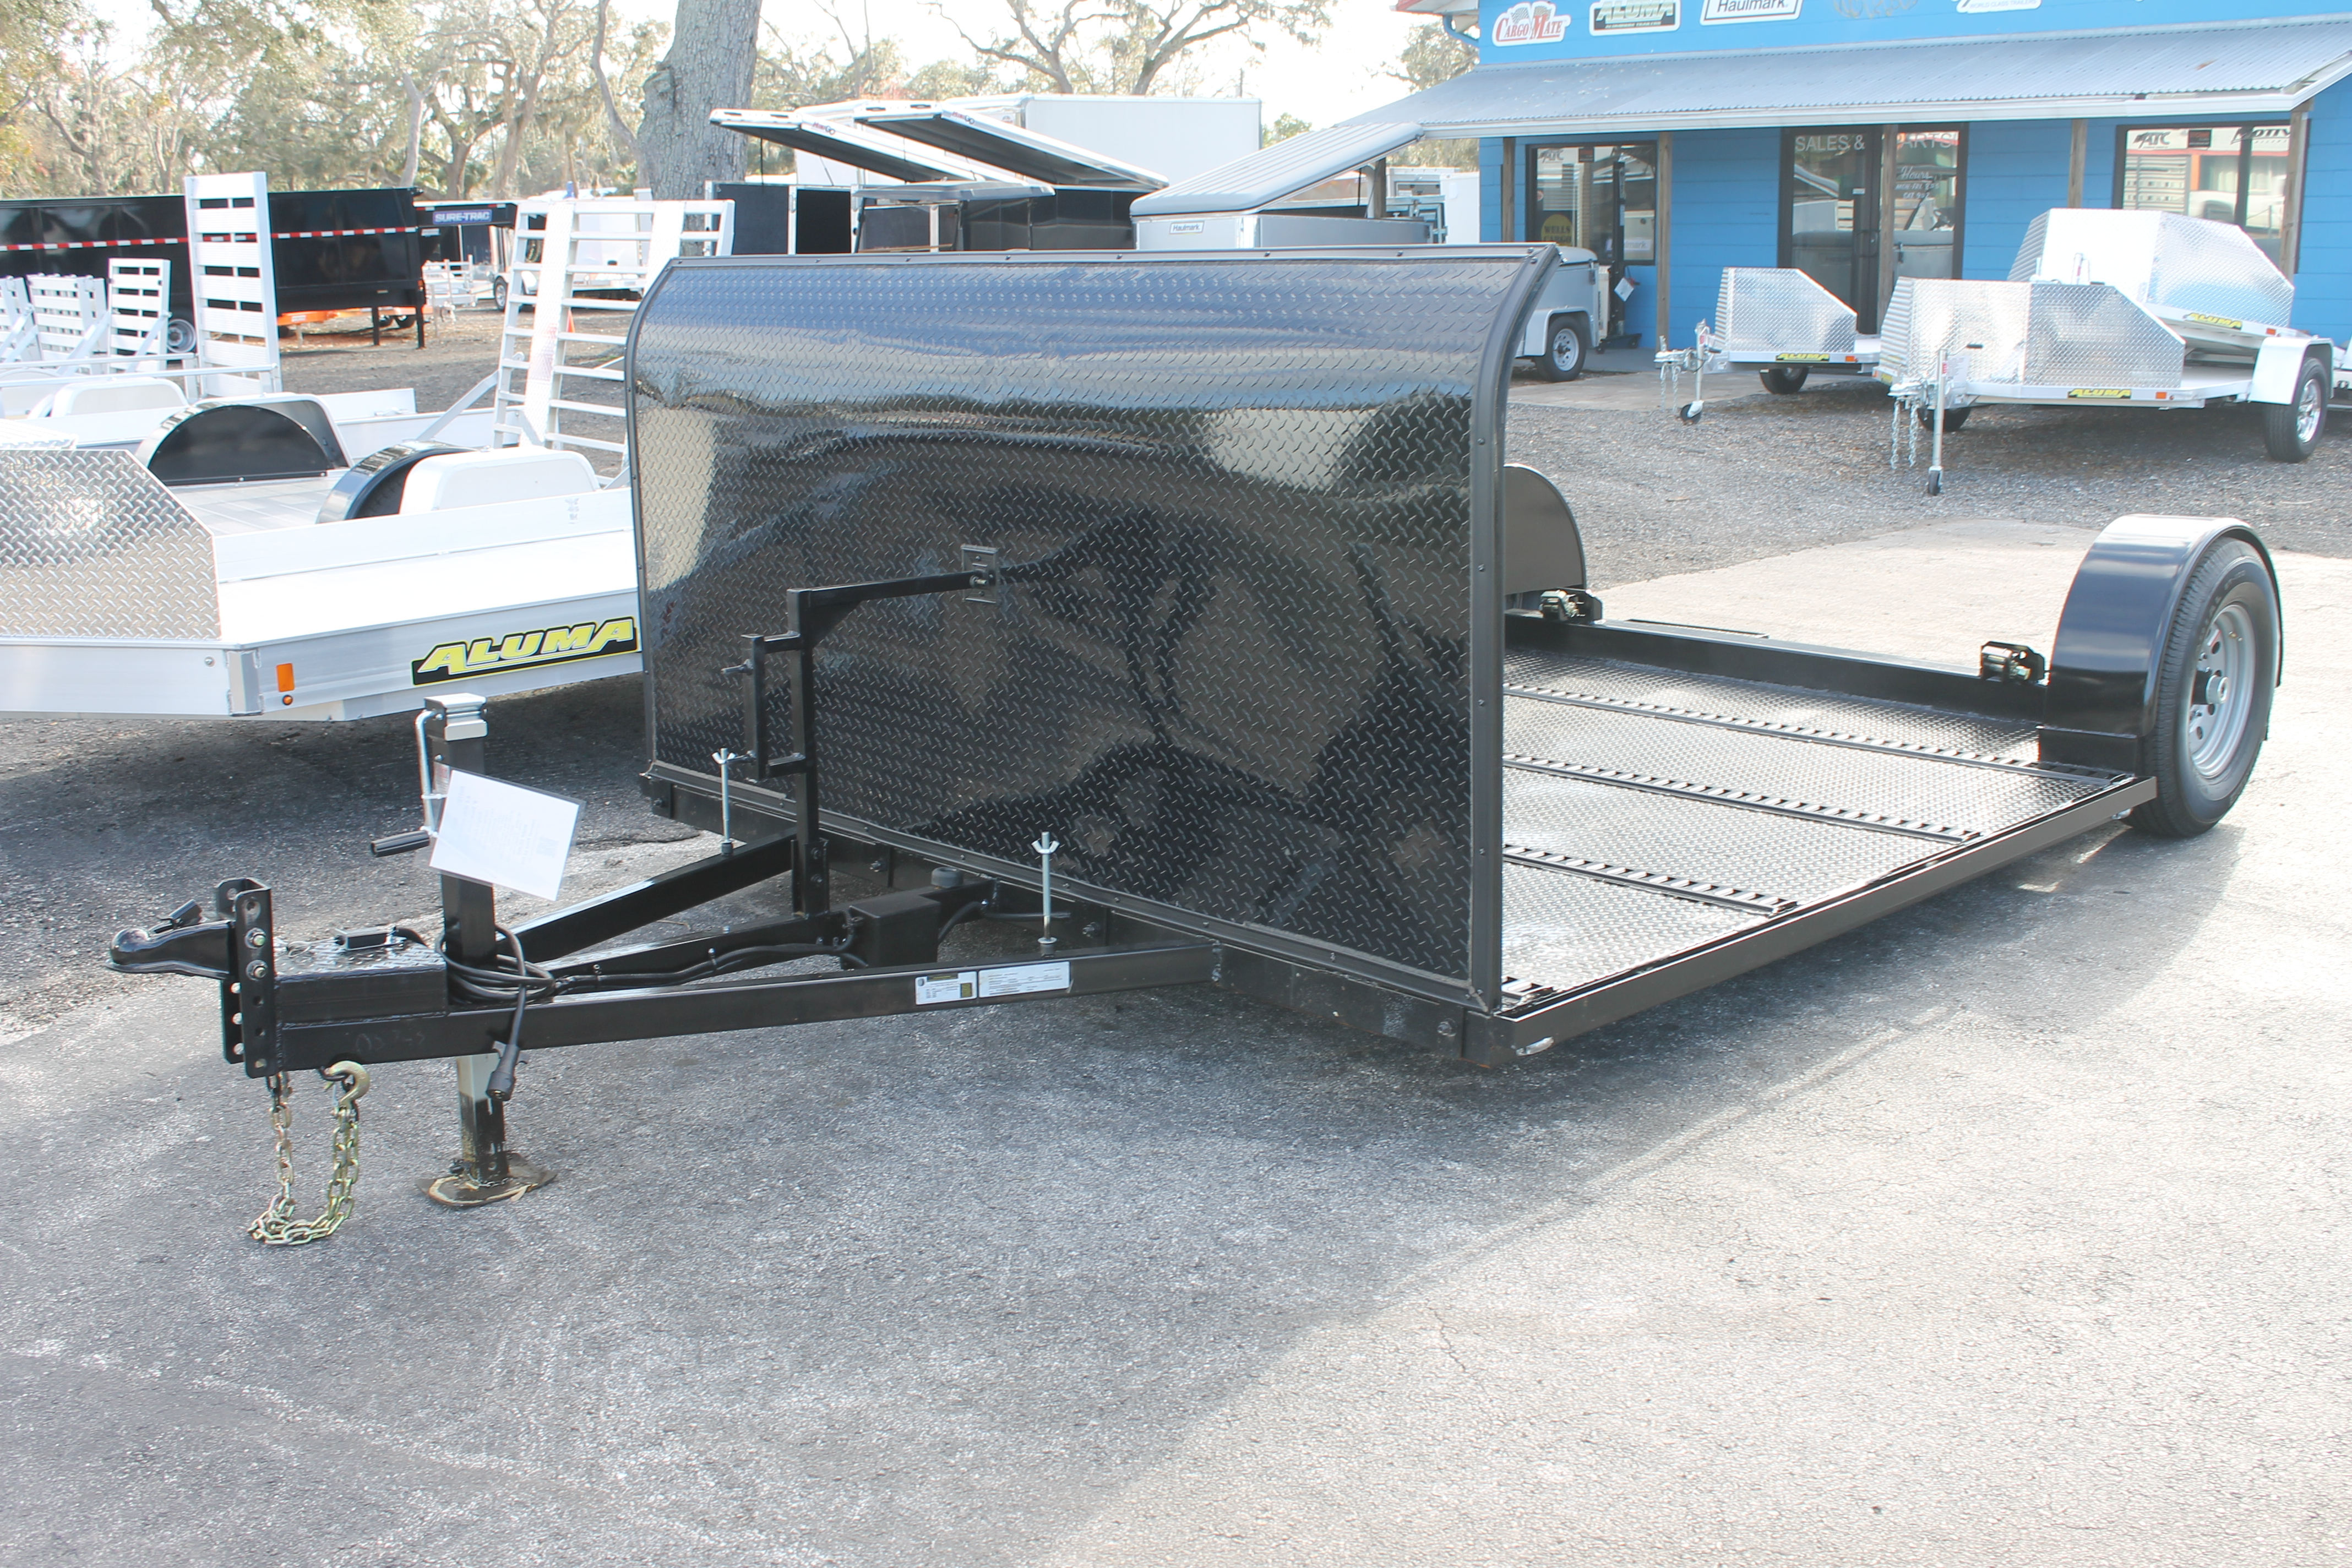 Trailer and Tow Dolly in one | Deck Over Dolly